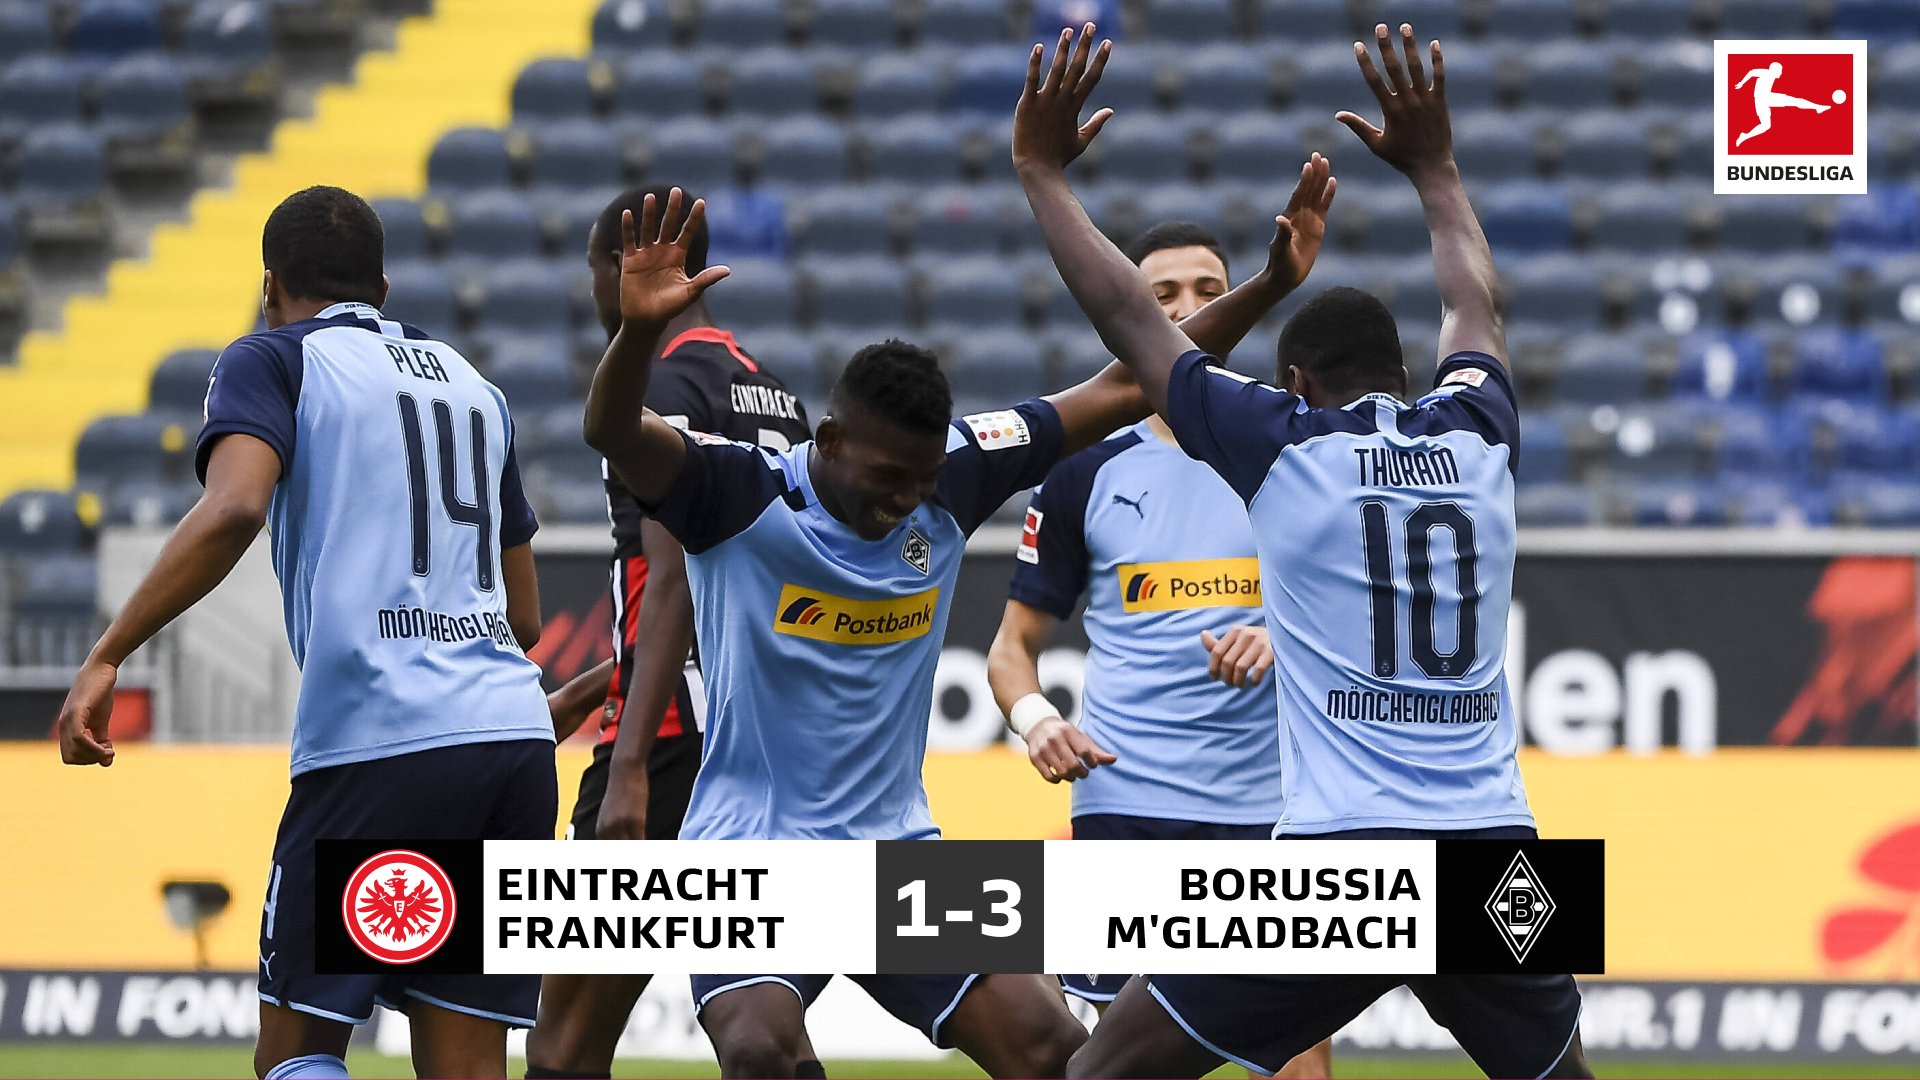 Bundesliga:  M'gladbach Climb To Third Spot With Away Win At Frankfurt